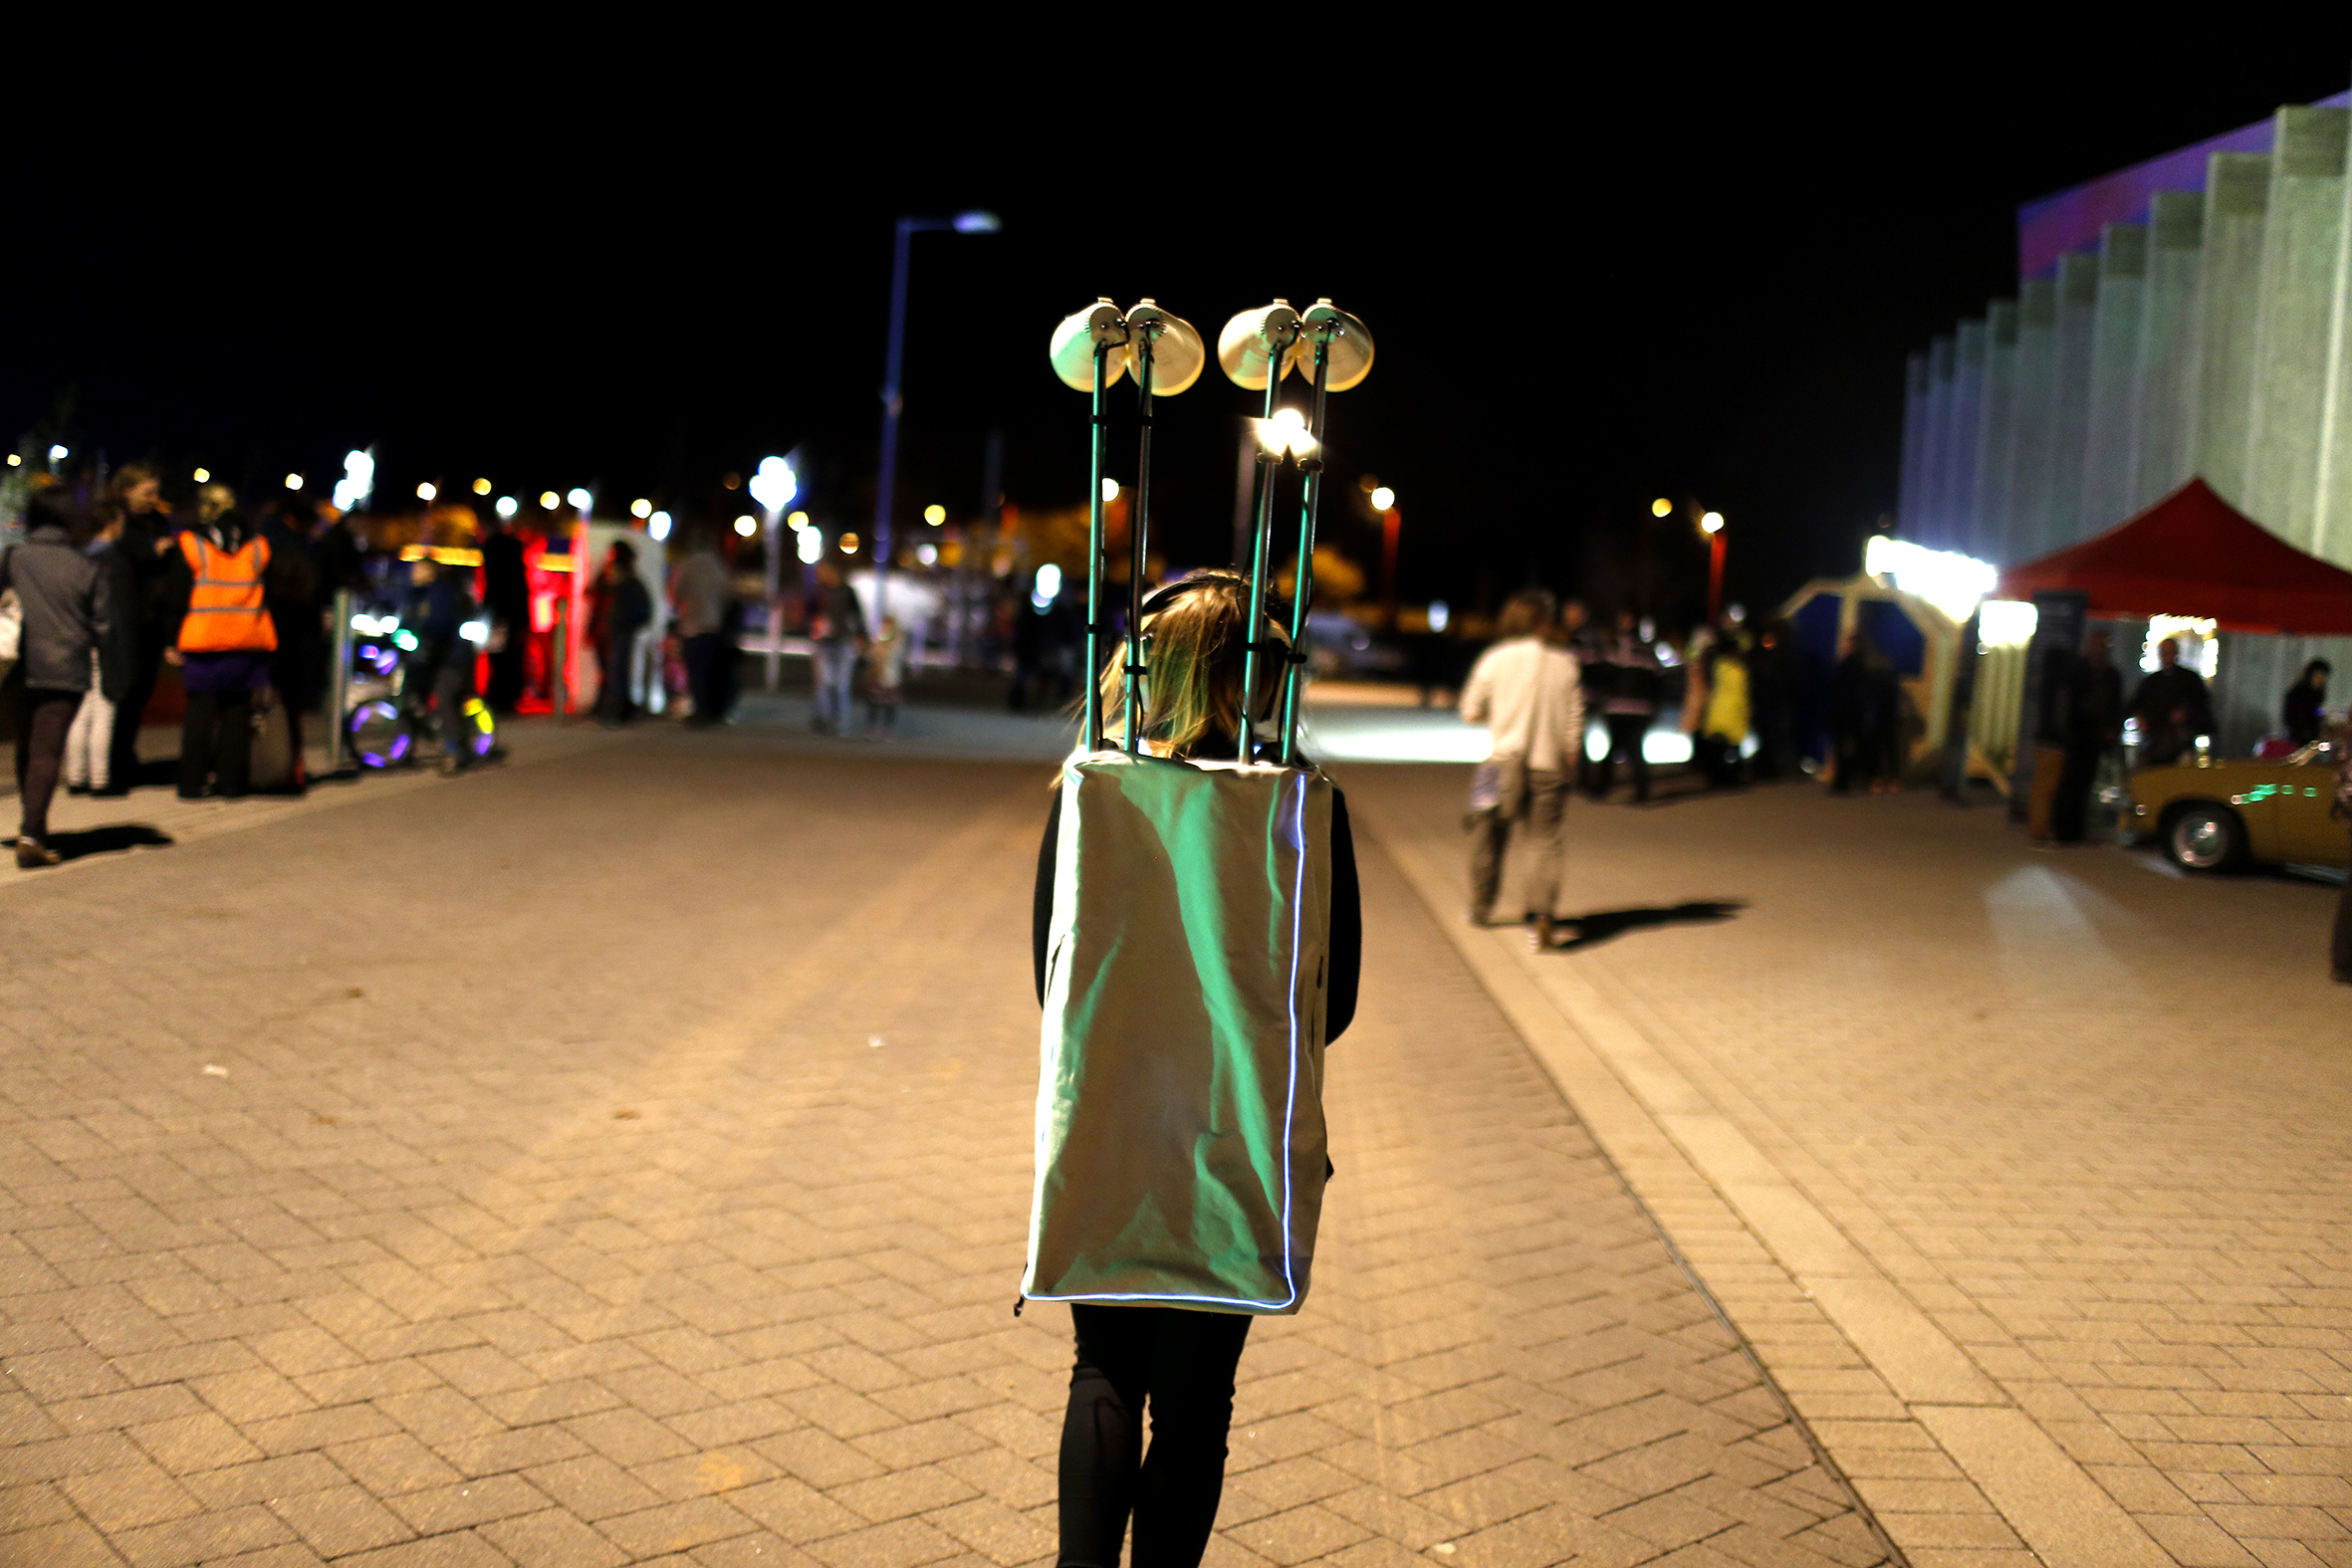 'Town Crier' by the Institute of Boundary Interactions, part of Longbridge Light Festival 2014